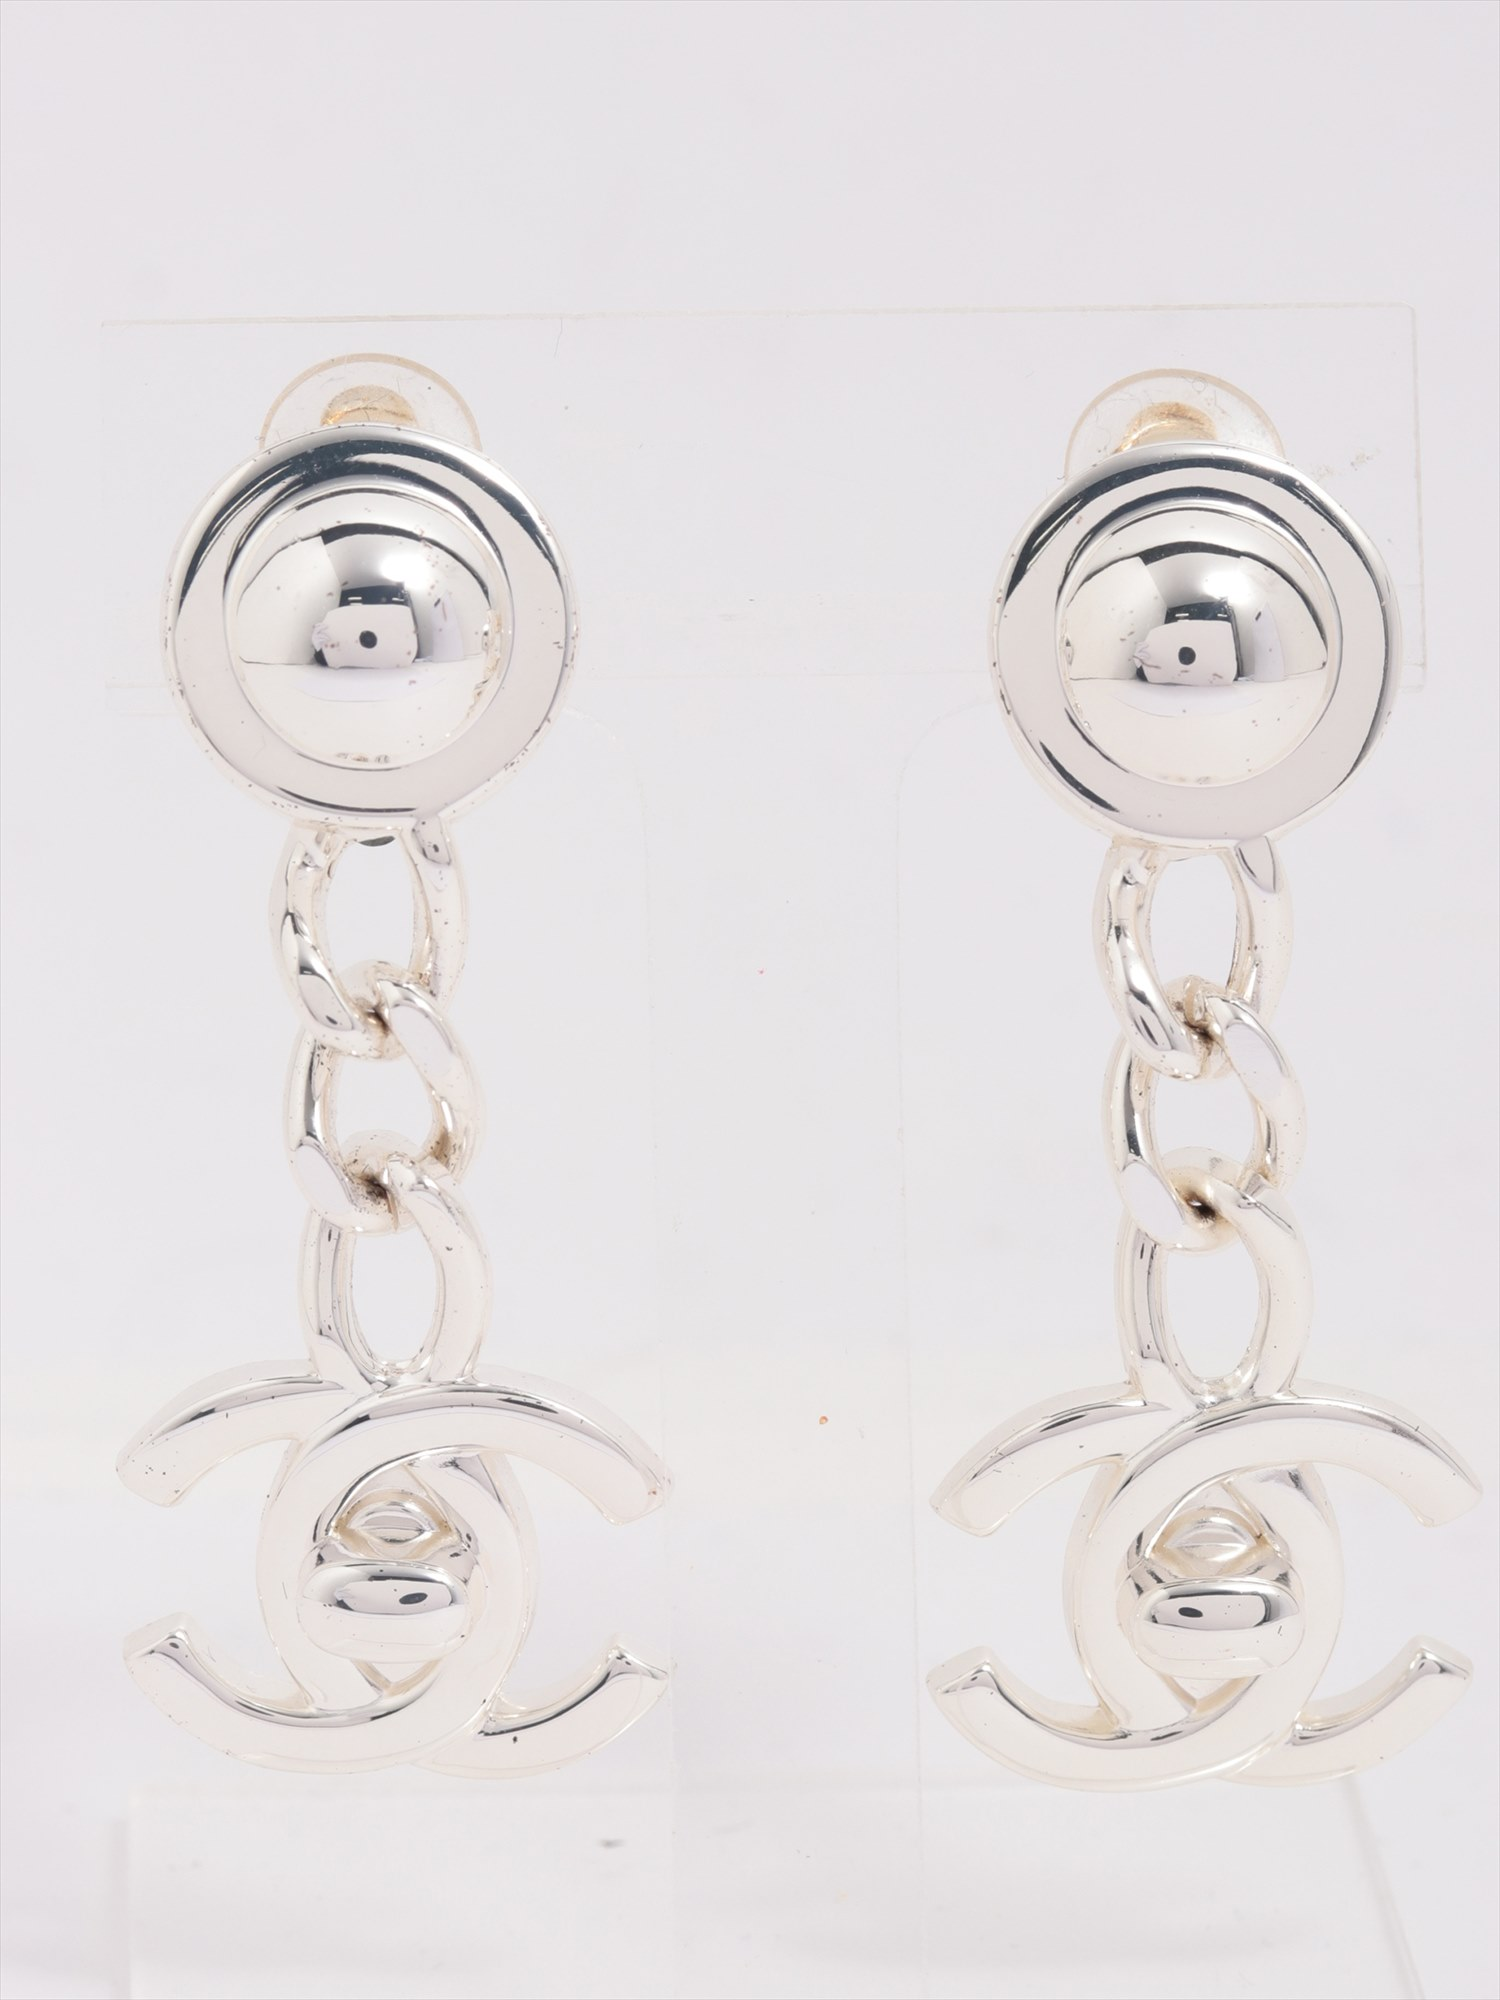 [Used goods] Chanel Coco mark earrings (for both ears) metal material silver turn lock 96A